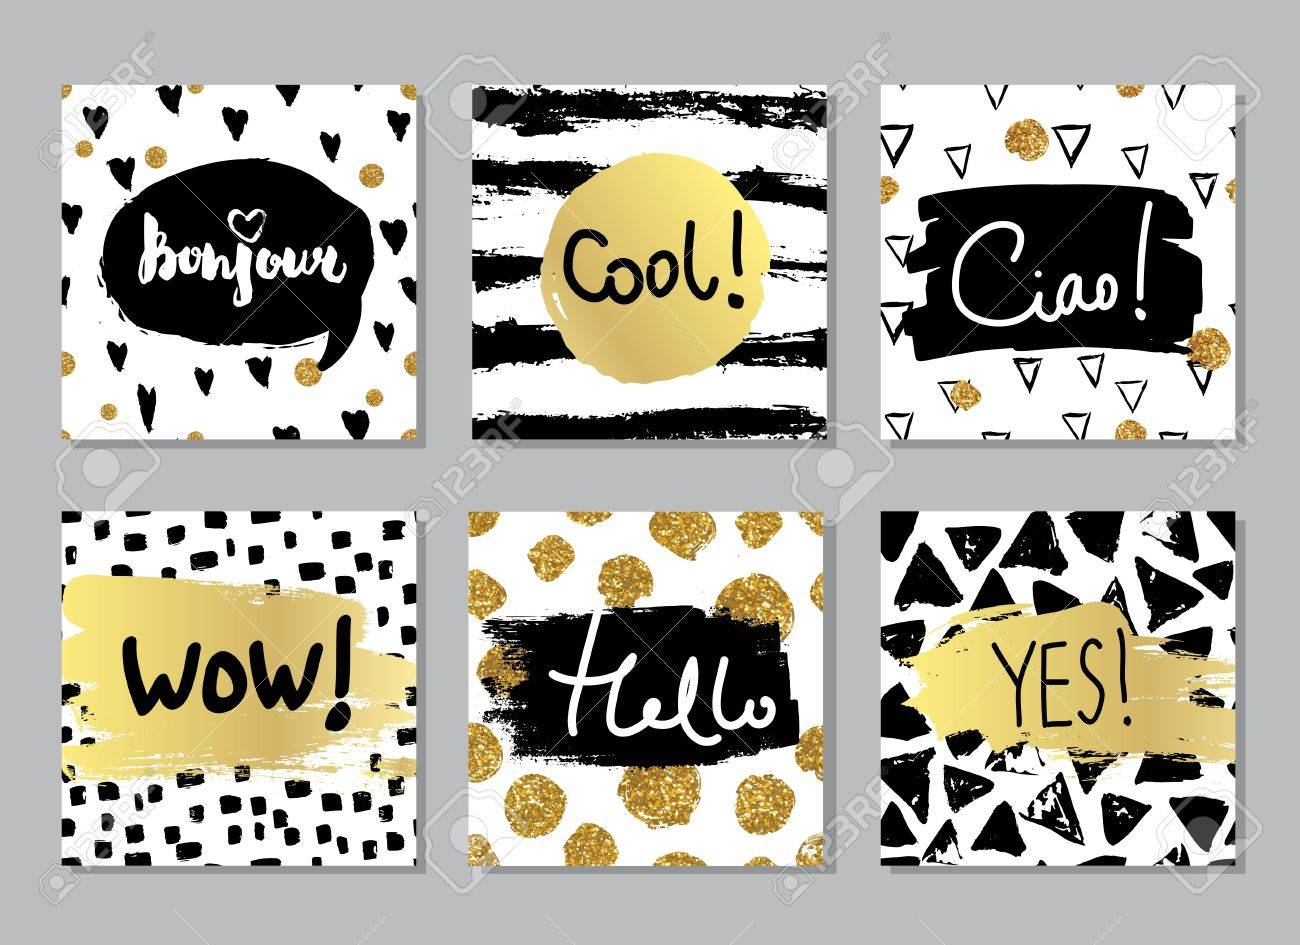 Creative fashion glamour hand drawn calligraphic card set. Vector collection of black, white, gold textured cards. Beautiful posters with geometric shapes. Sign hello in french and italian. - 62012207